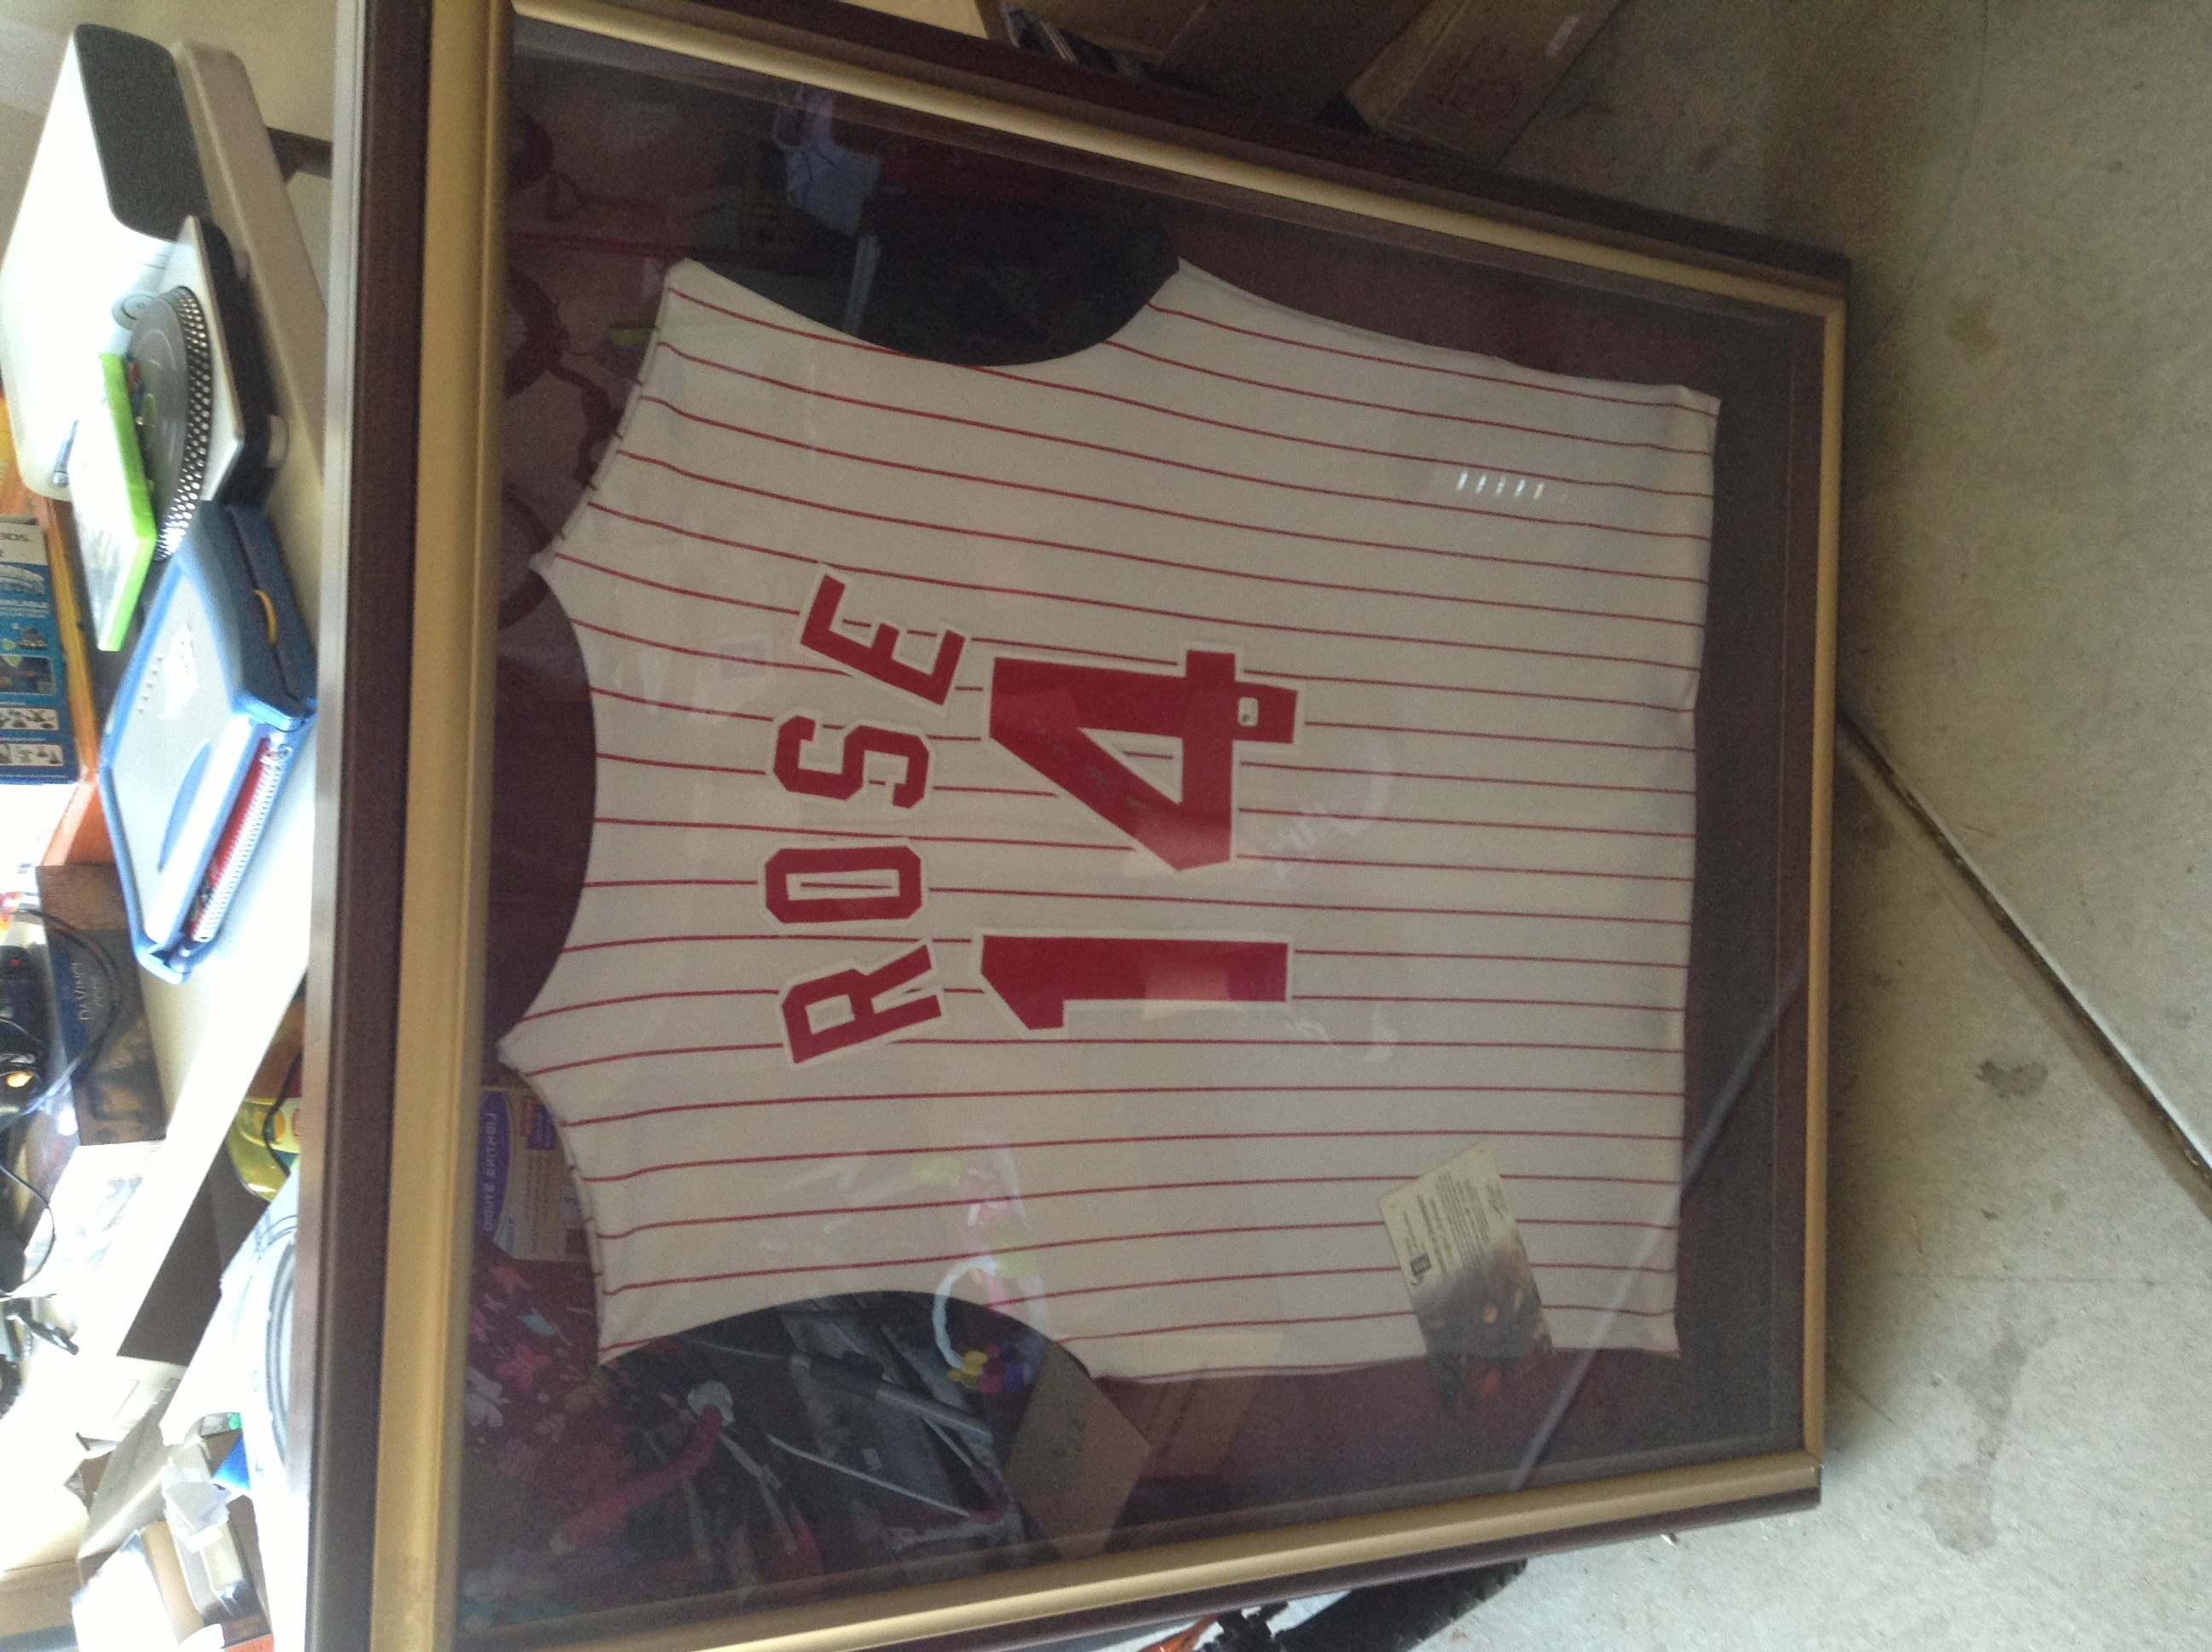 signed pete rose jersey in whatleyworlds garage sale